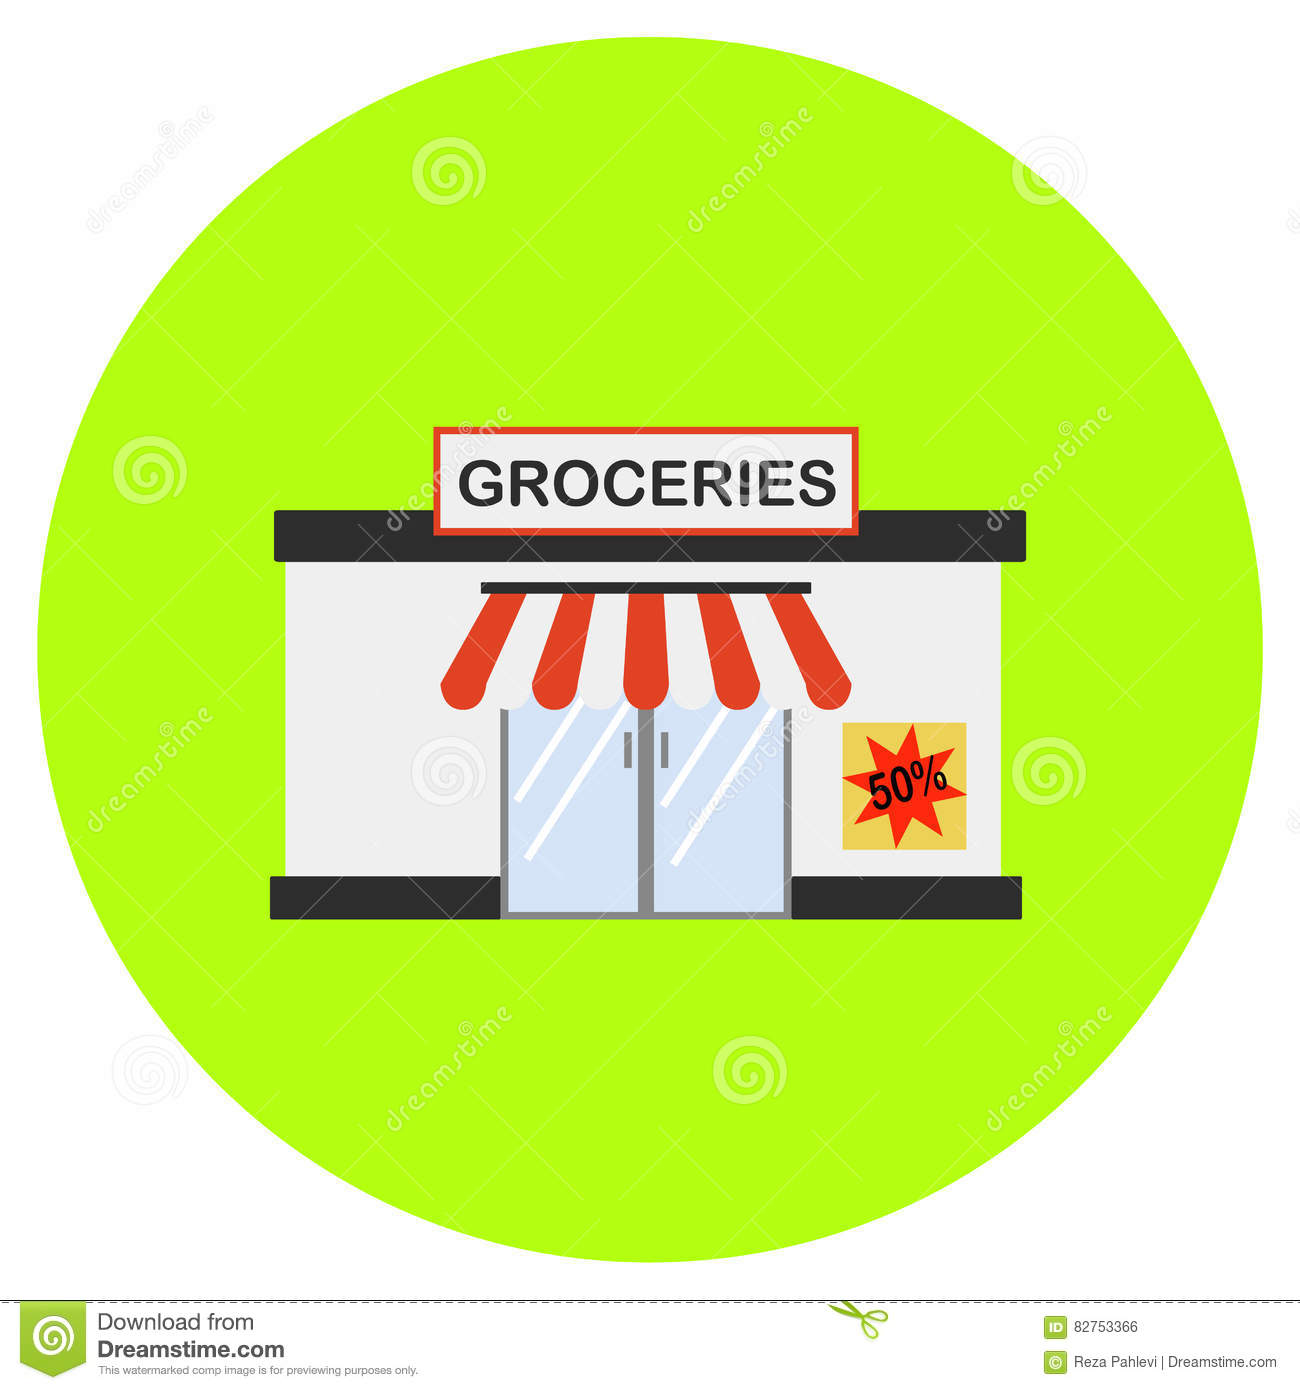 Grocery icon in trendy flat style isolated on grey background grocery icon in trendy flat style isolated on grey background building symbol for your design logo ui vector illustration eps biocorpaavc